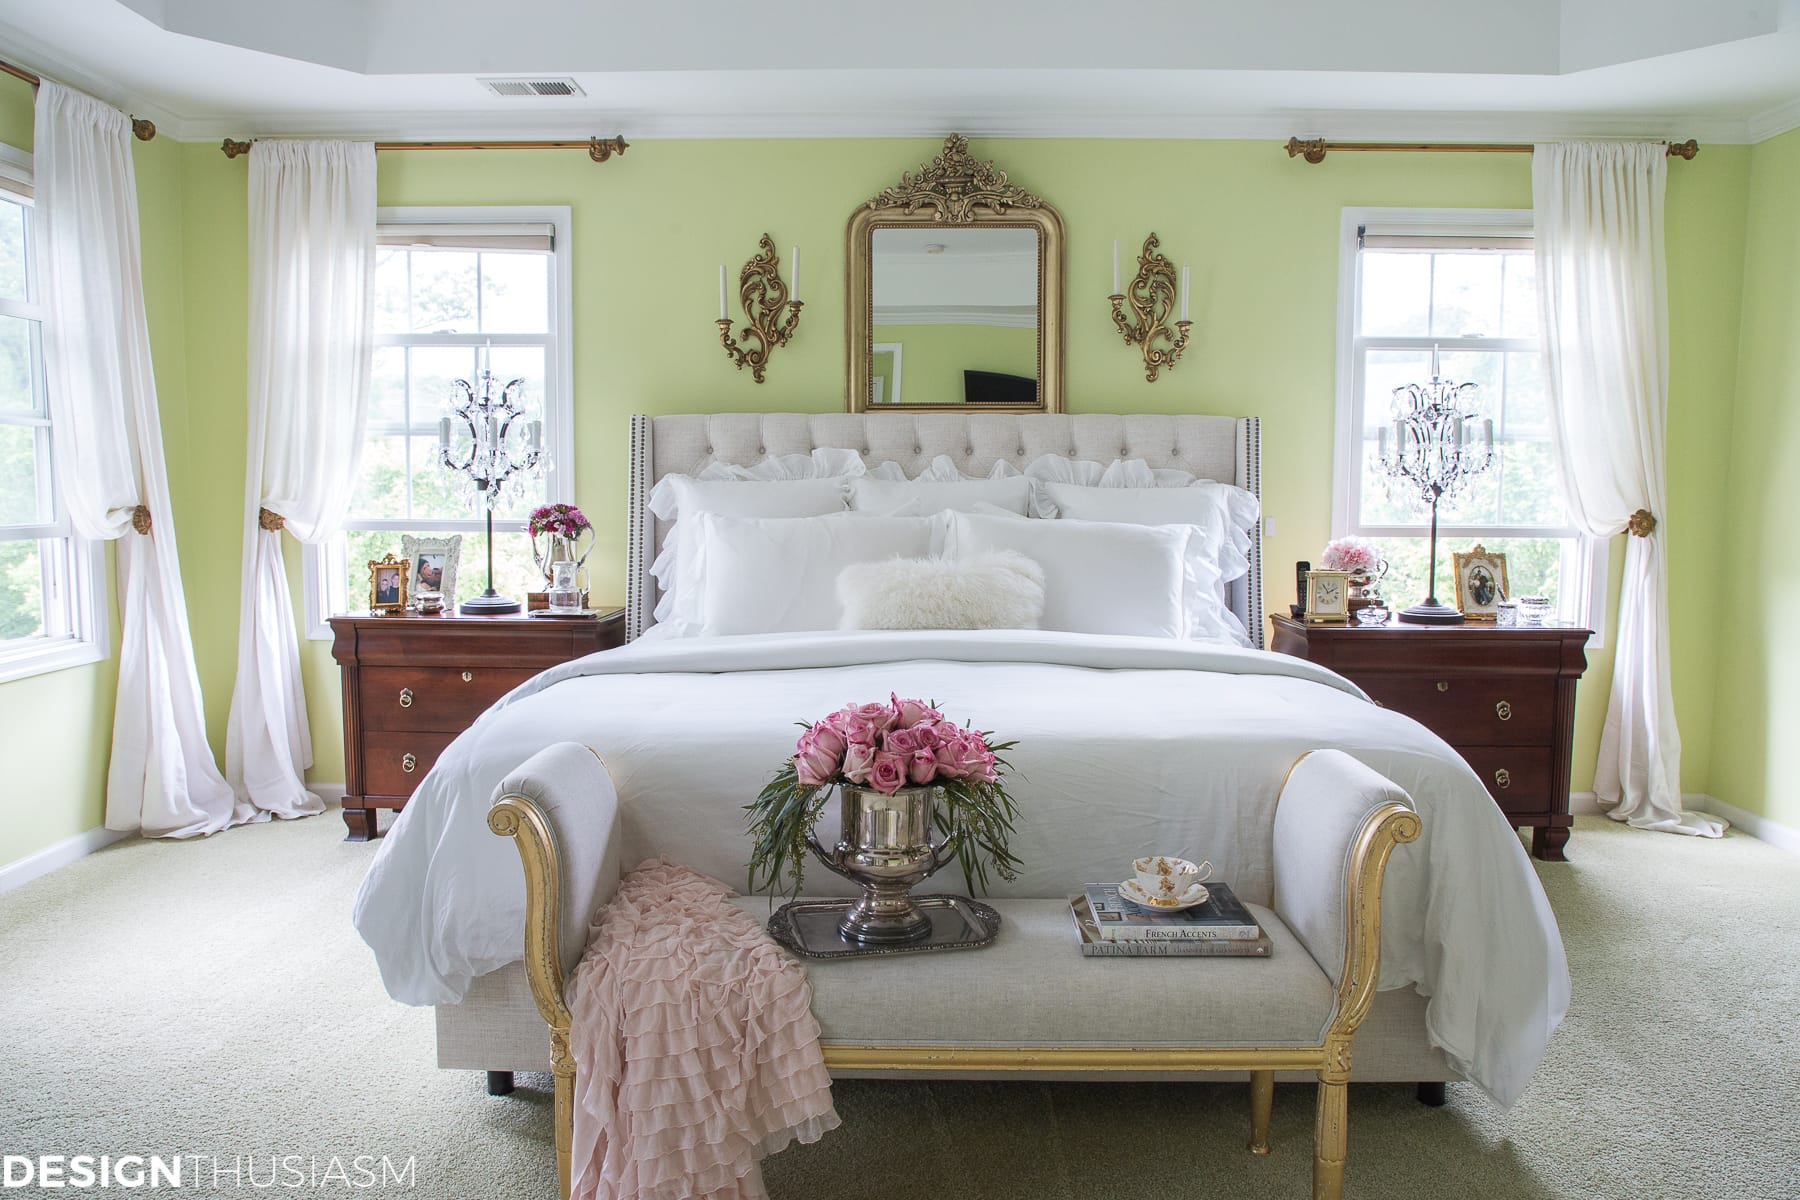 Master Bedroom Ideas: 7 Tips for Creating a Dreamy Updated ... on Master Bedroom Ideas  id=65912